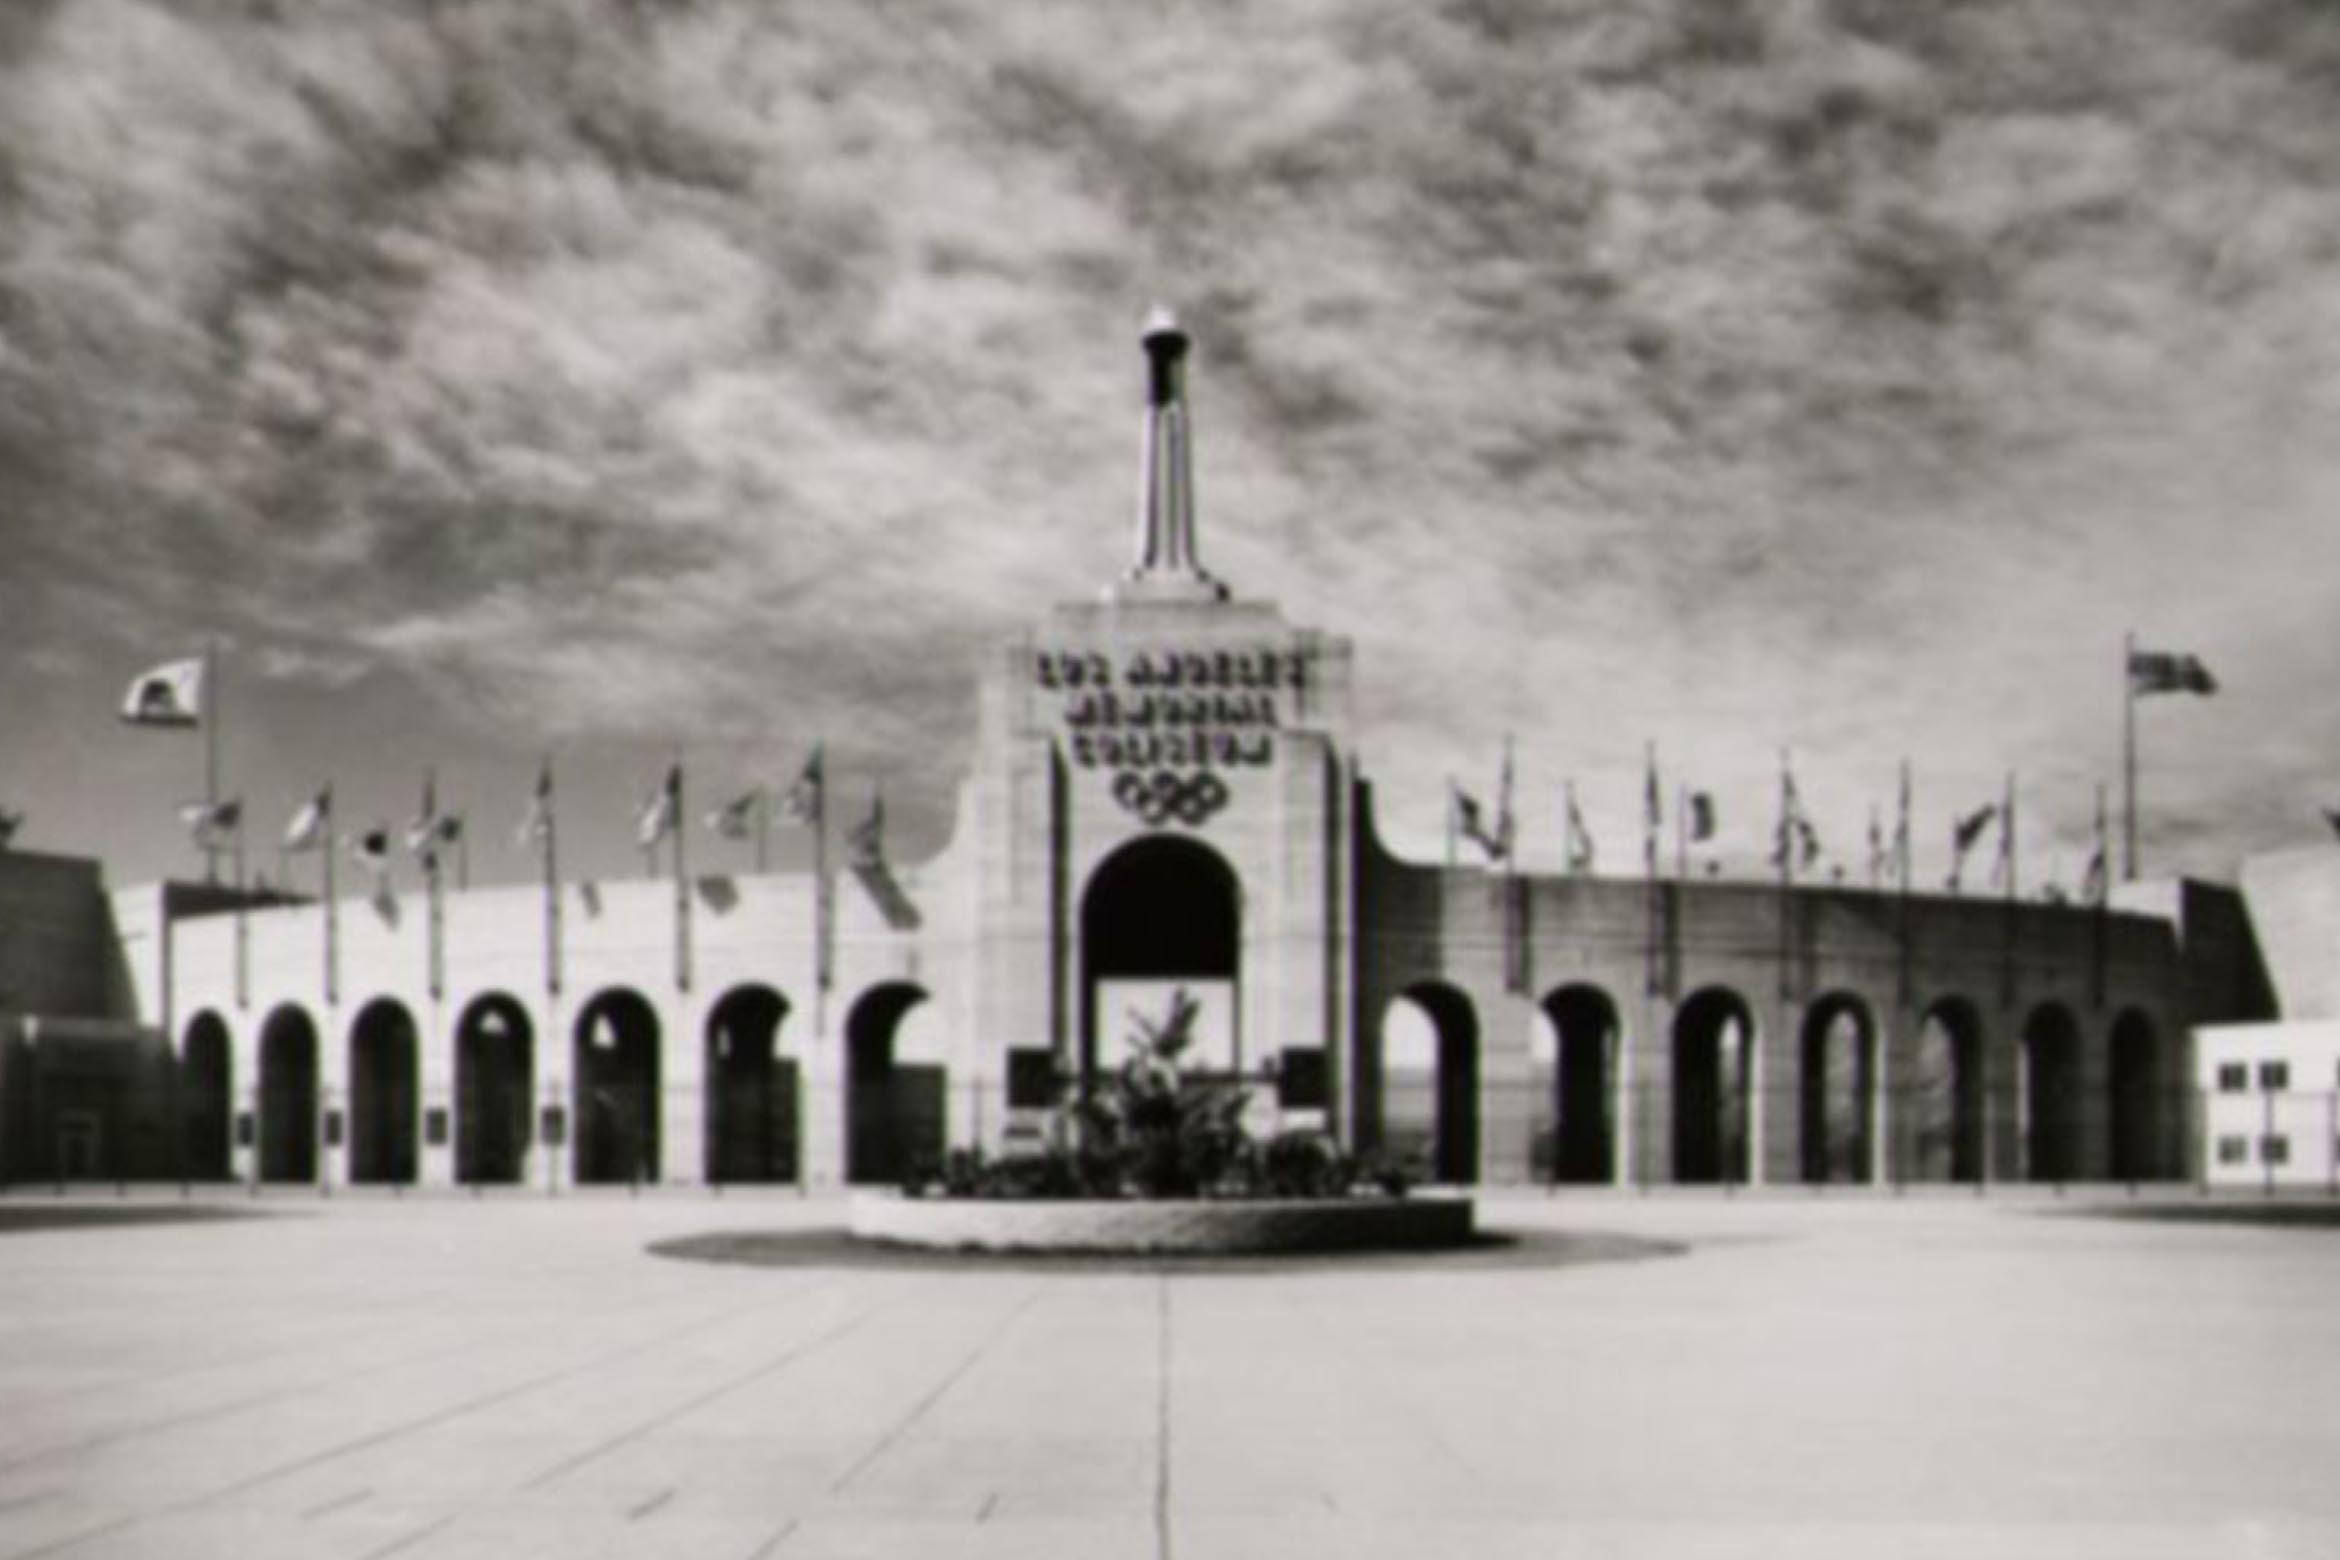 The 1932 Olympic Games - 83 Years Later - Los Angeles Coliseum